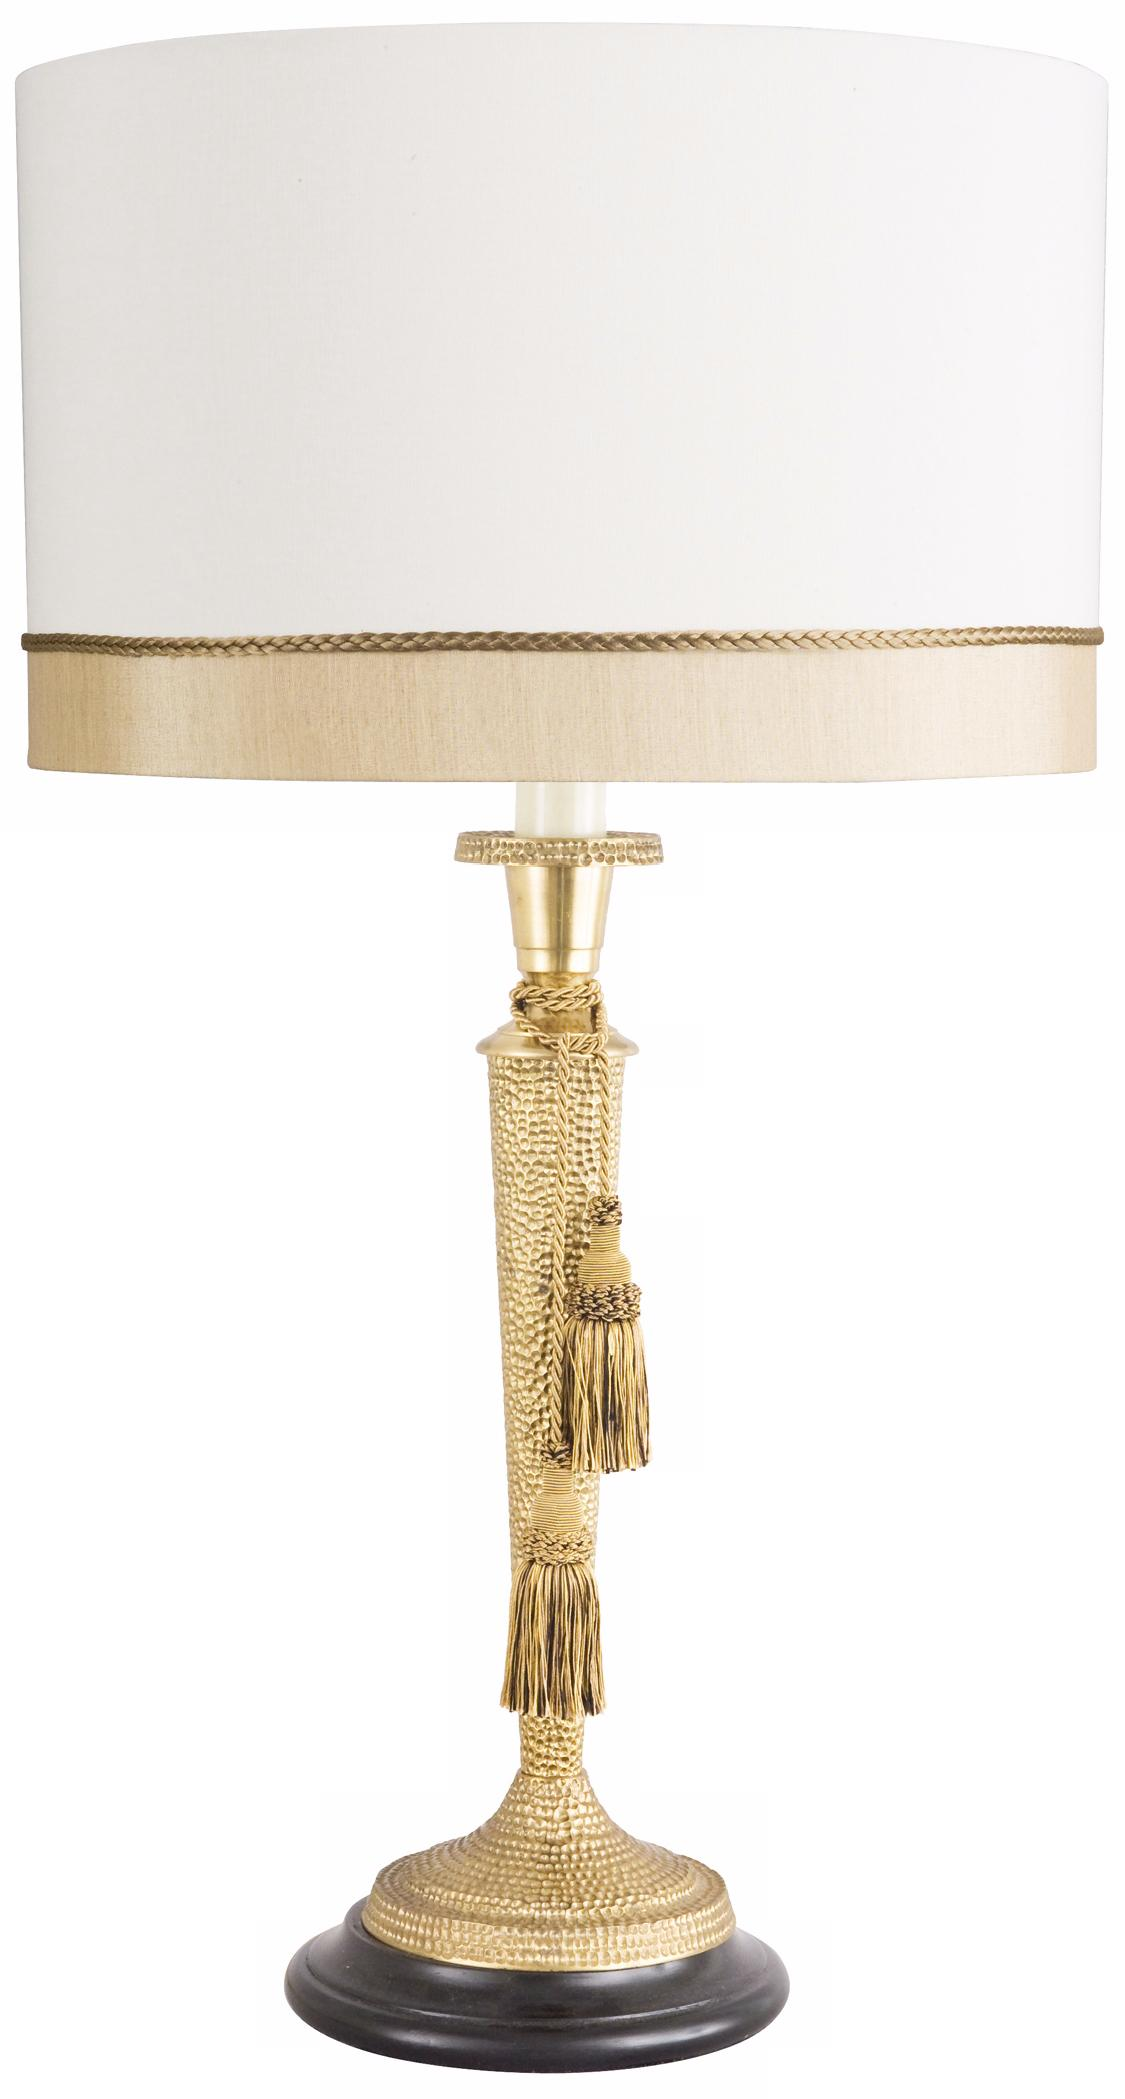 Frederick Cooper Jeweler's Hammer Table Lamp (N8198)